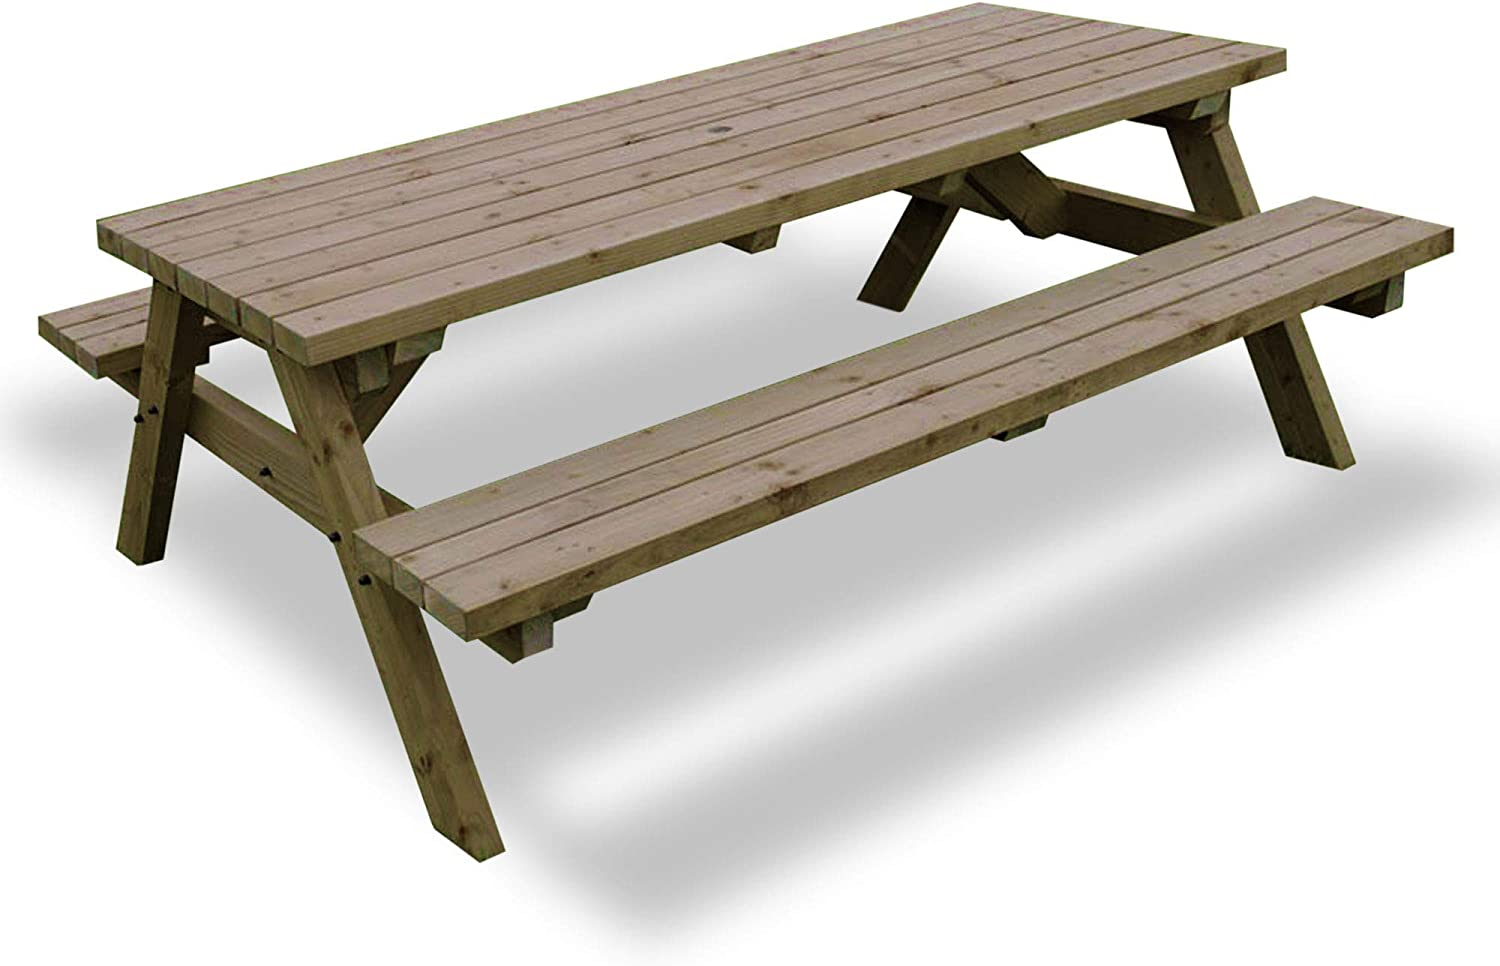 6FT WALK-IN STYLE WOODEN TABLE /& SEATS SET PICNIC TABLE HEAVY DUTY BEST QUALITY